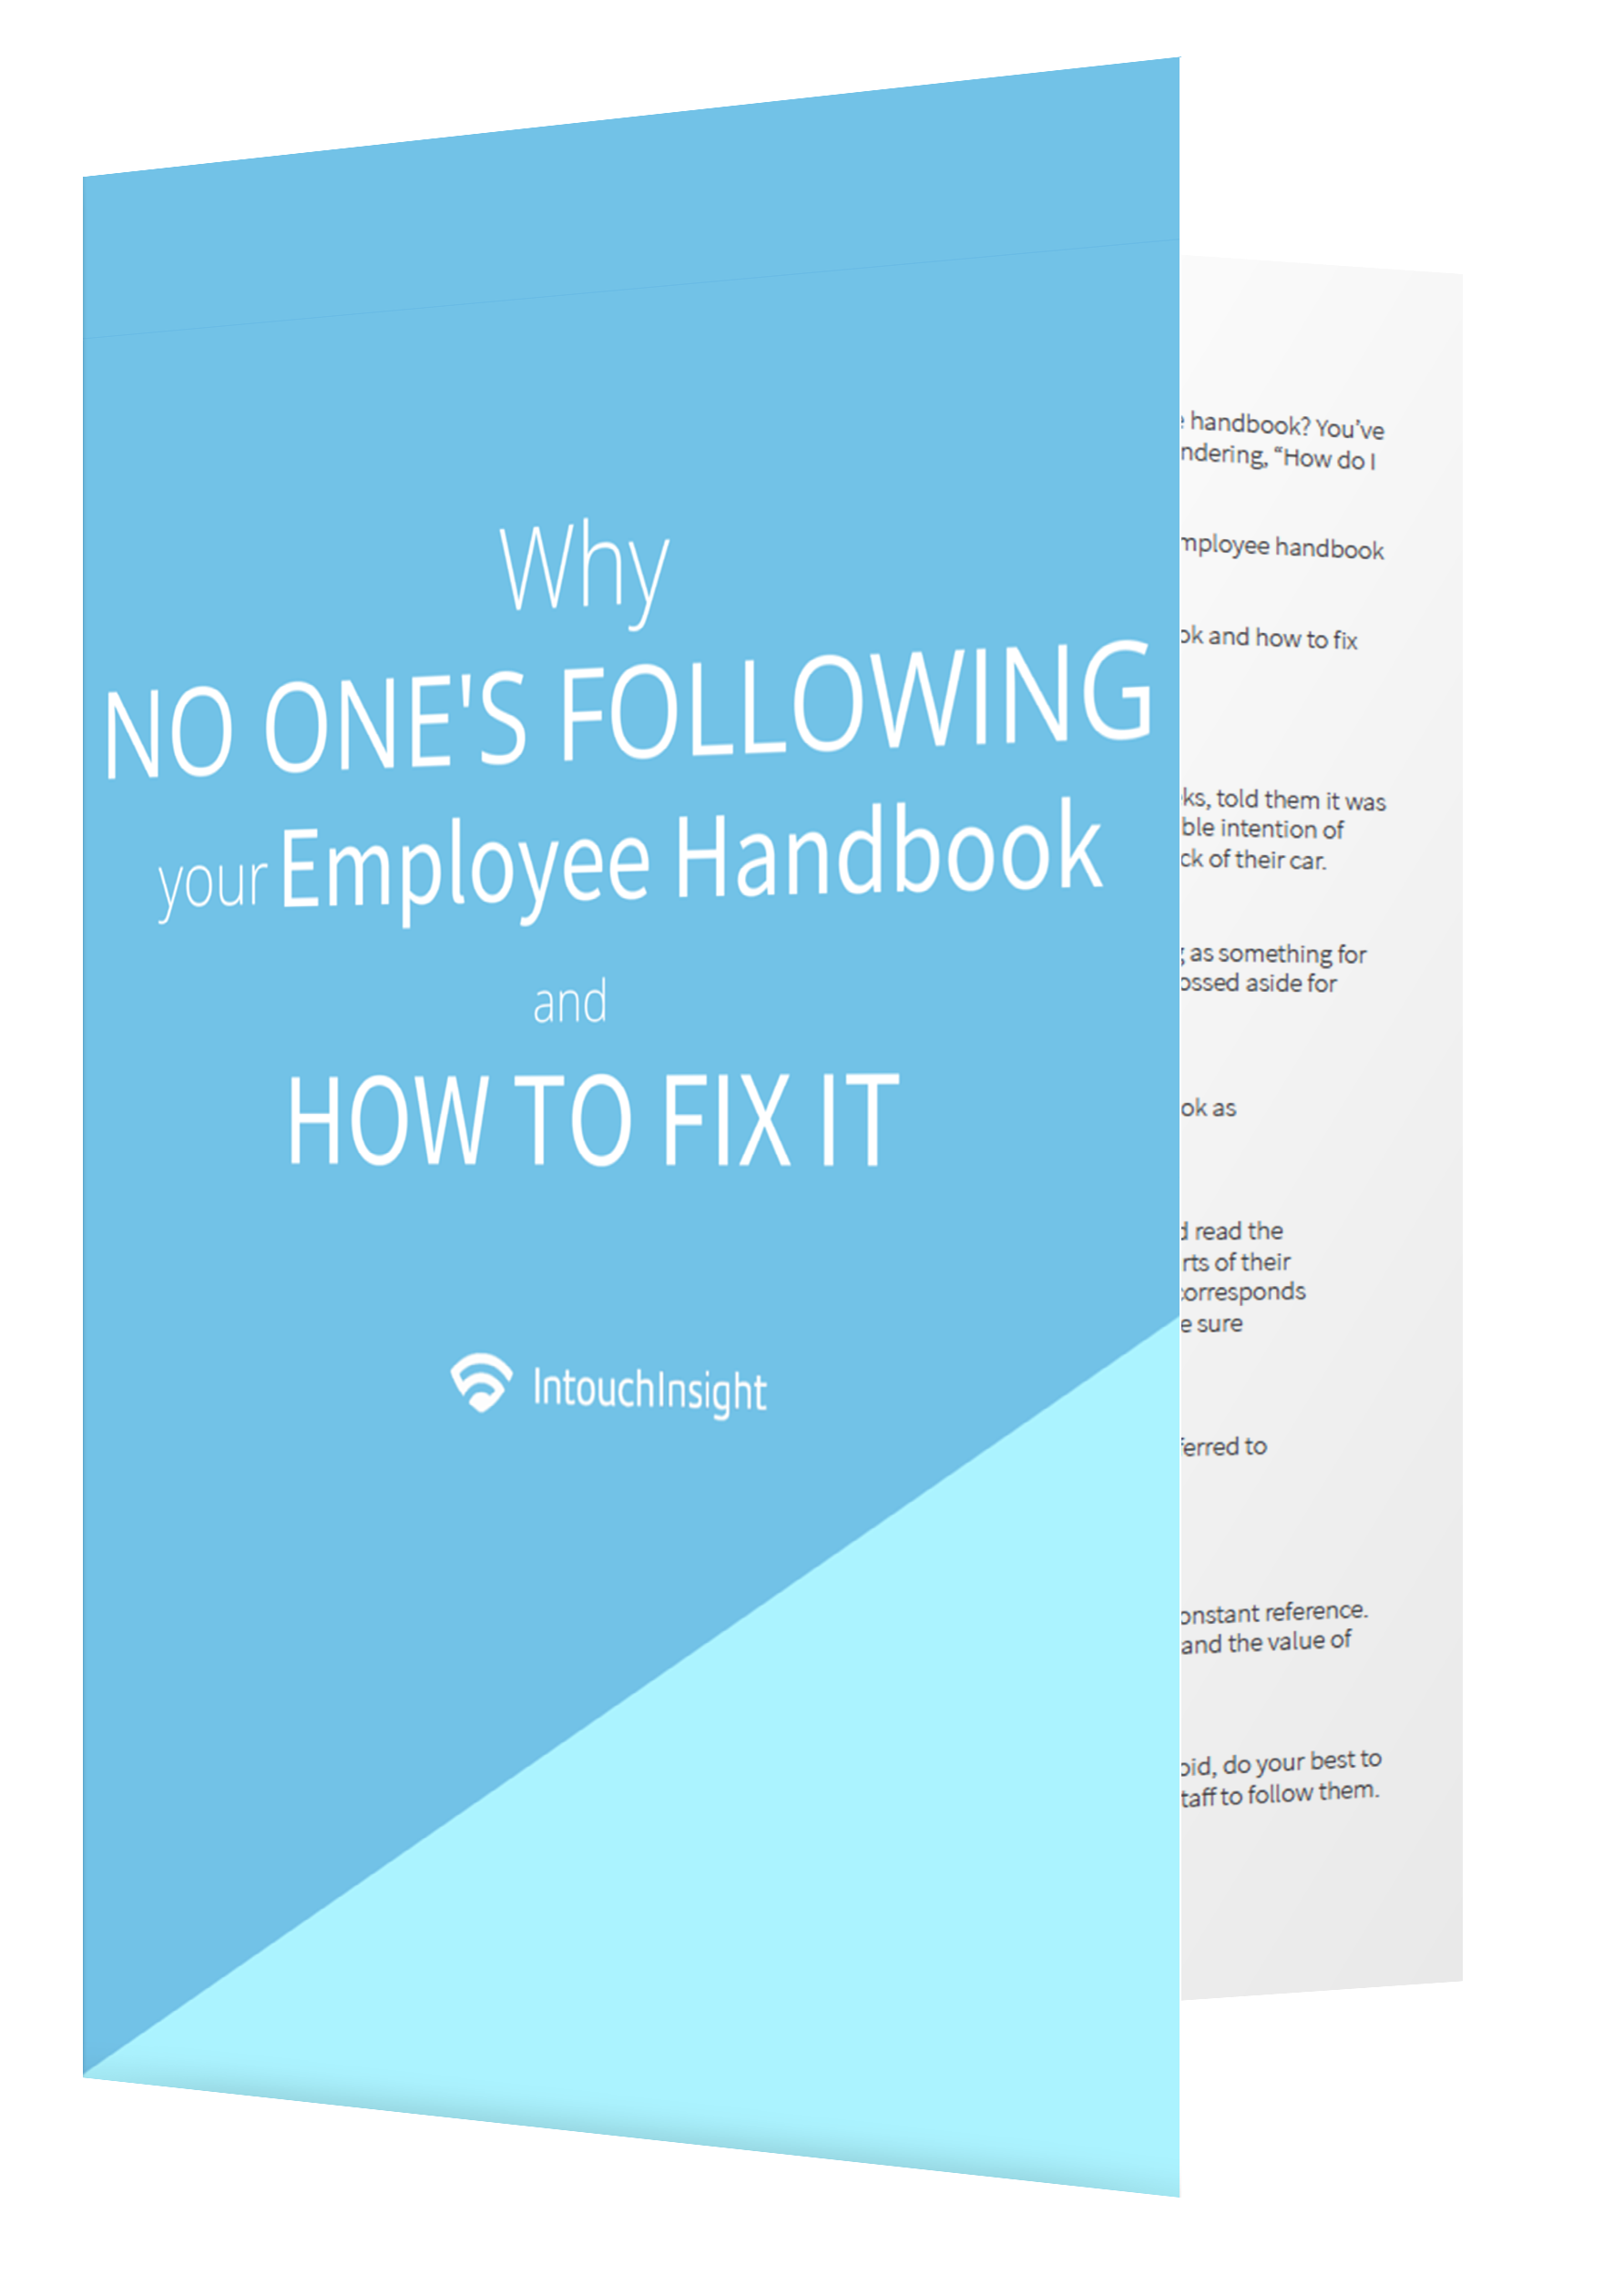 Why No One's Following your Employee Handbook Ebook